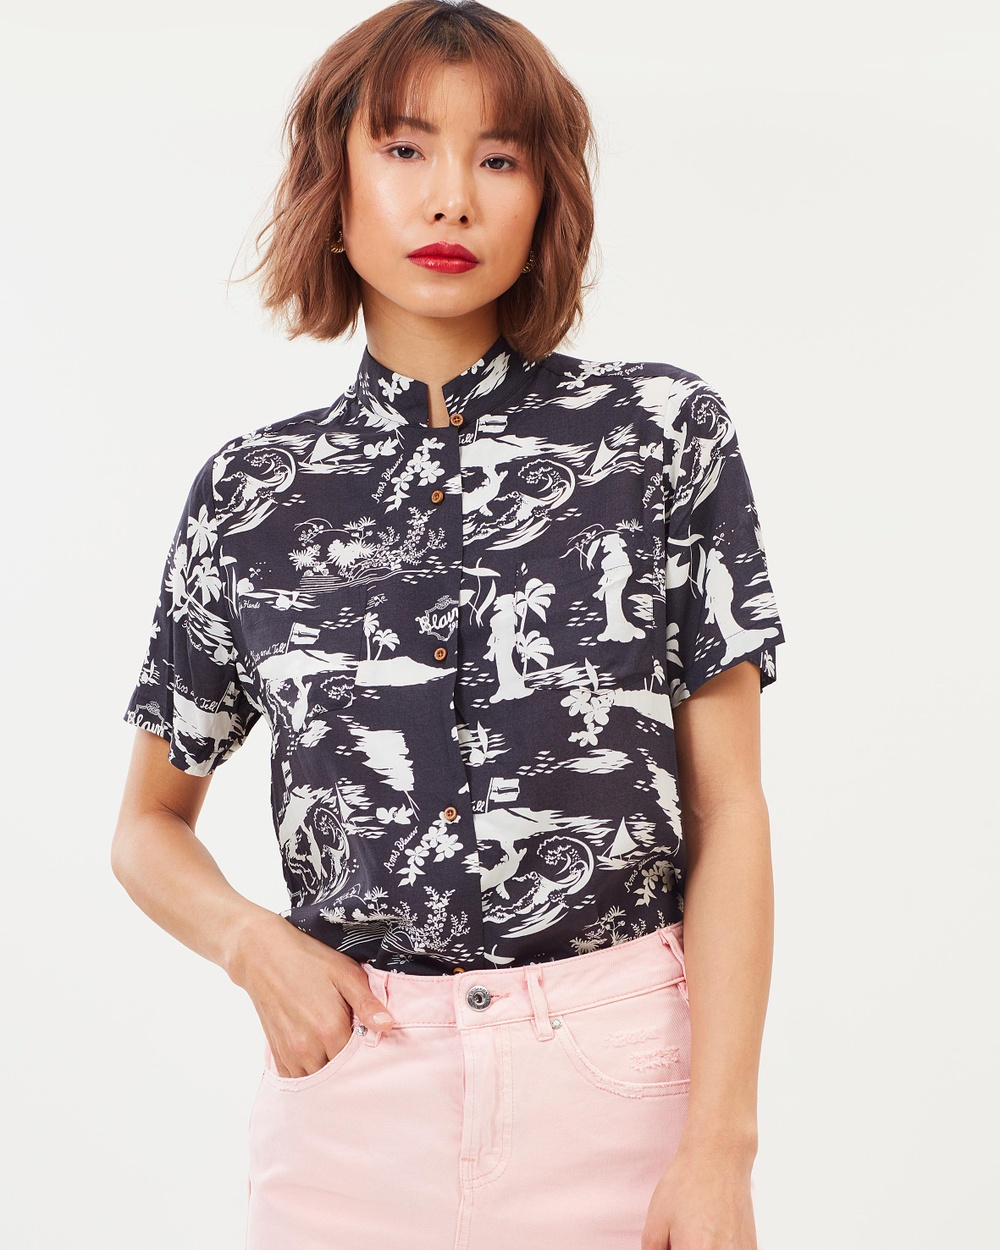 Maison Scotch Tropical Souvenir Shirt Tops Black & White Tropical Print Tropical Souvenir Shirt